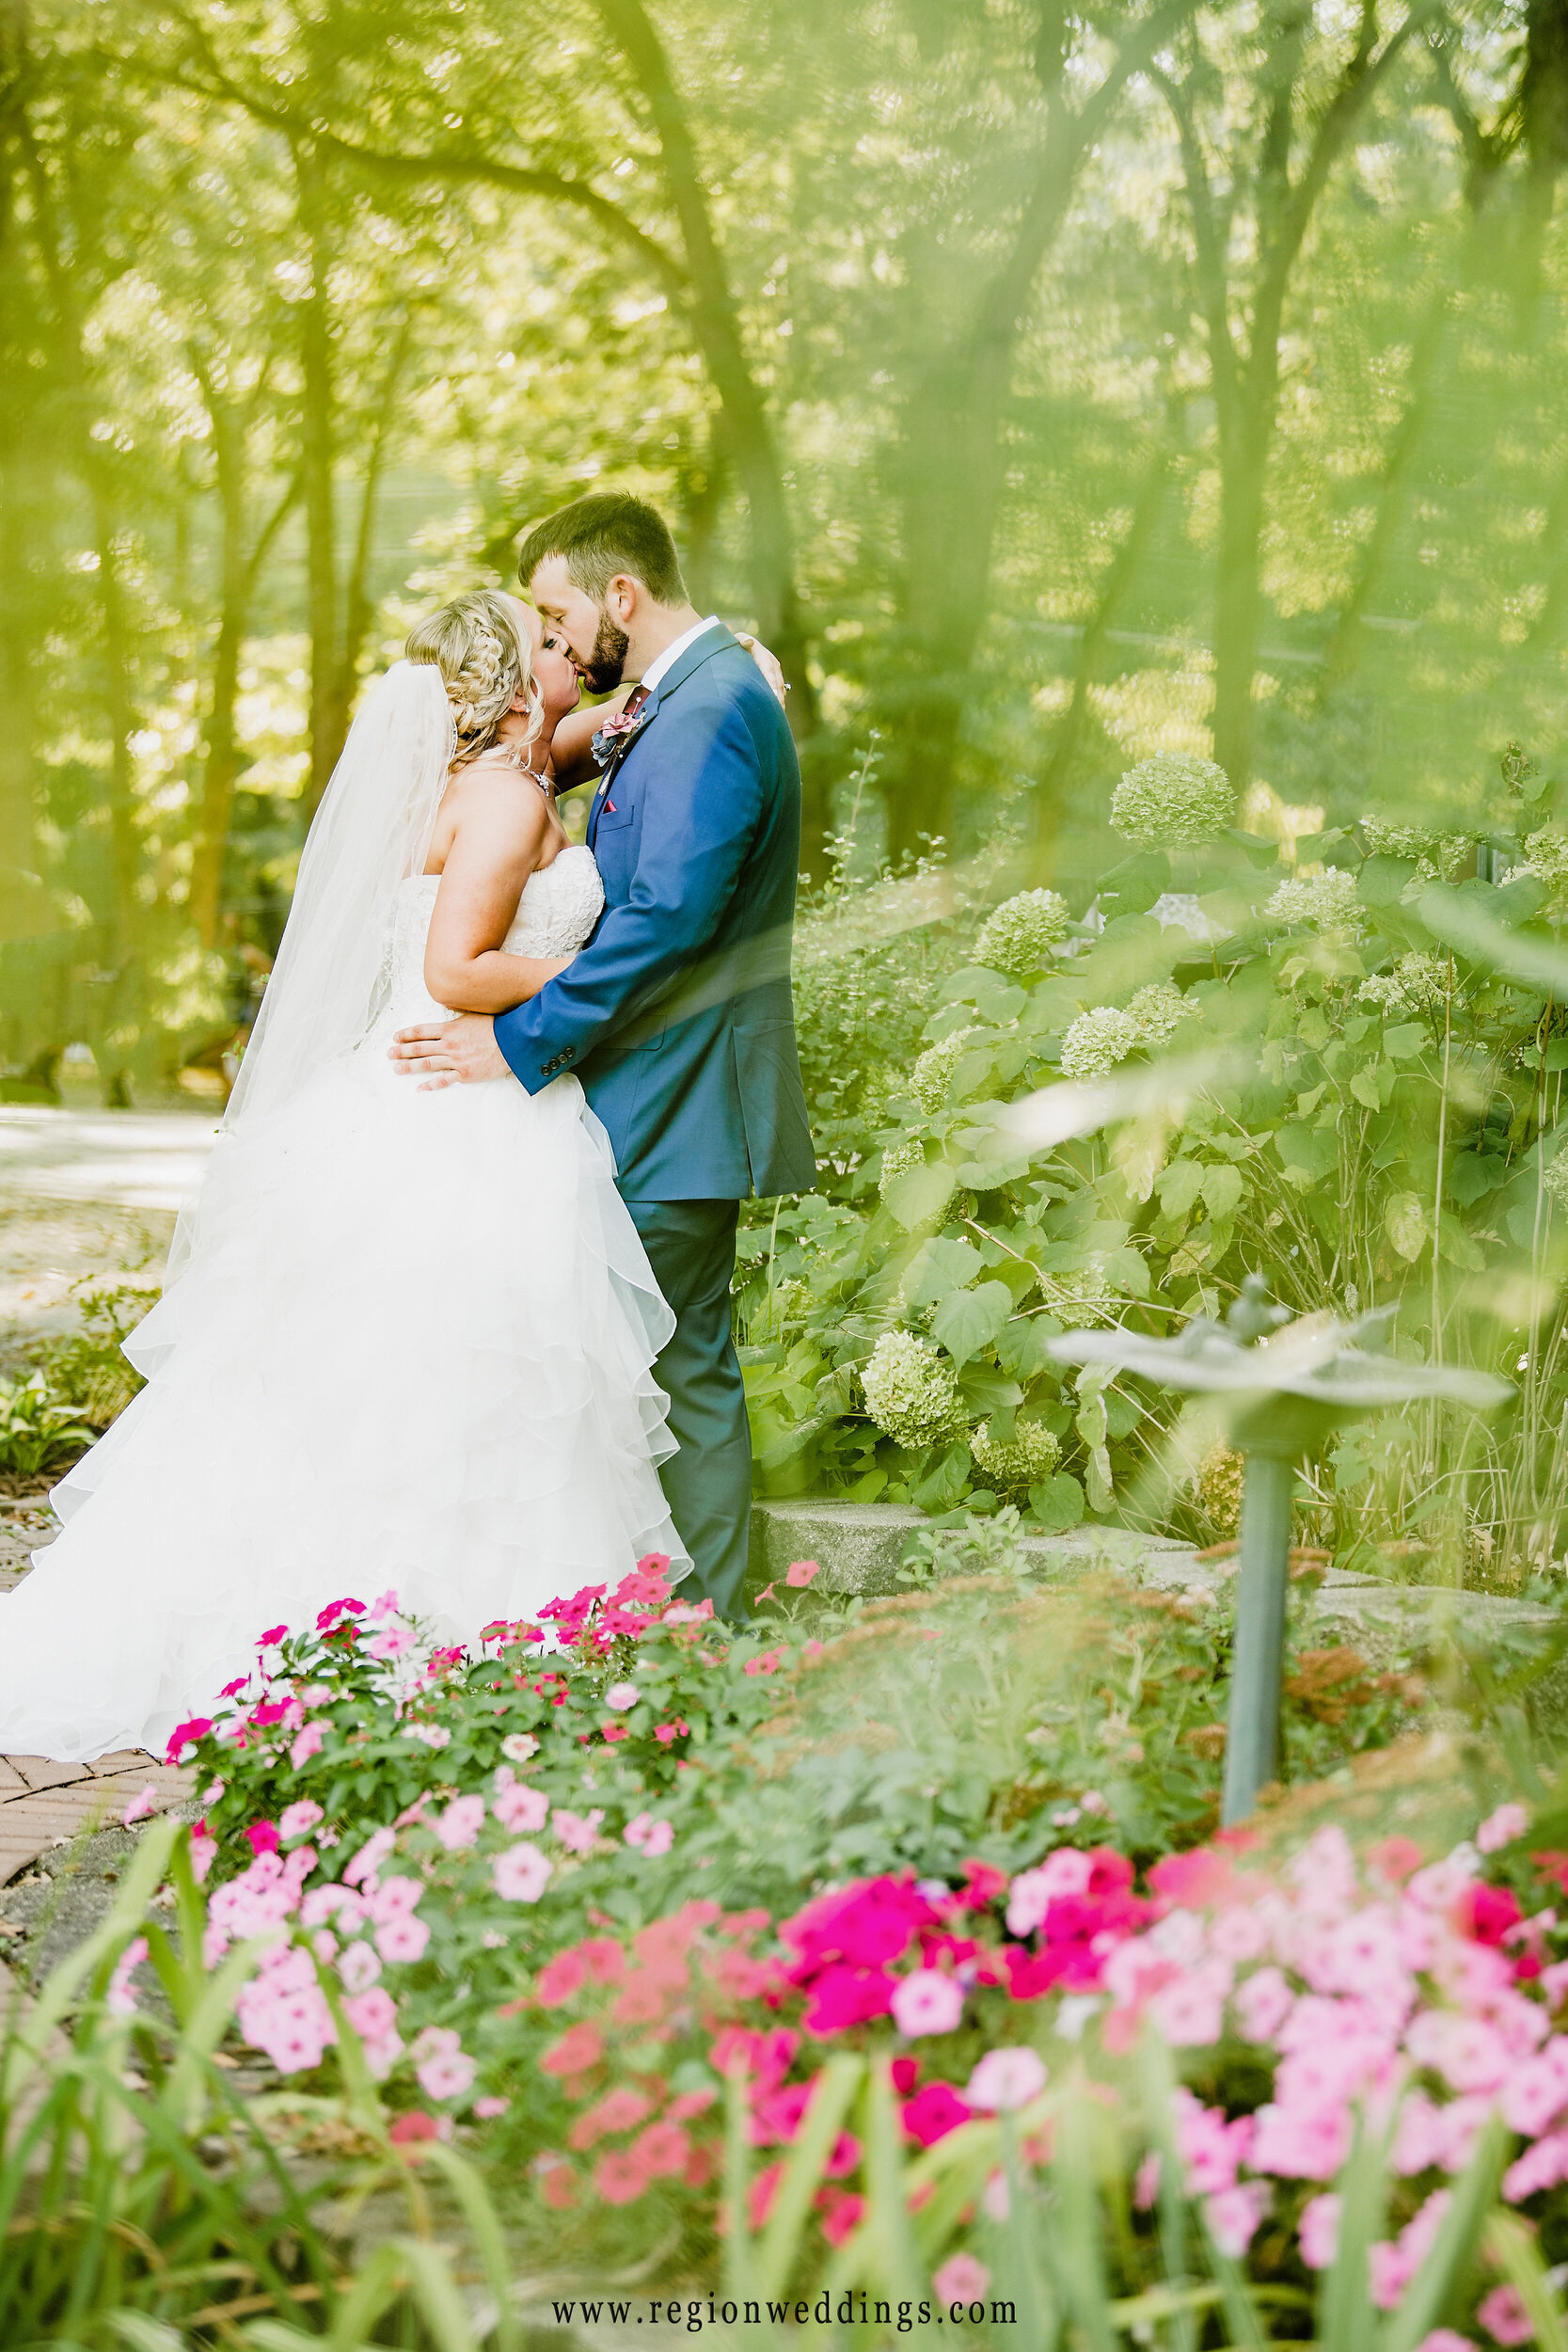 A flower garden surrounds the bride and groom in this romantic wedding photo.